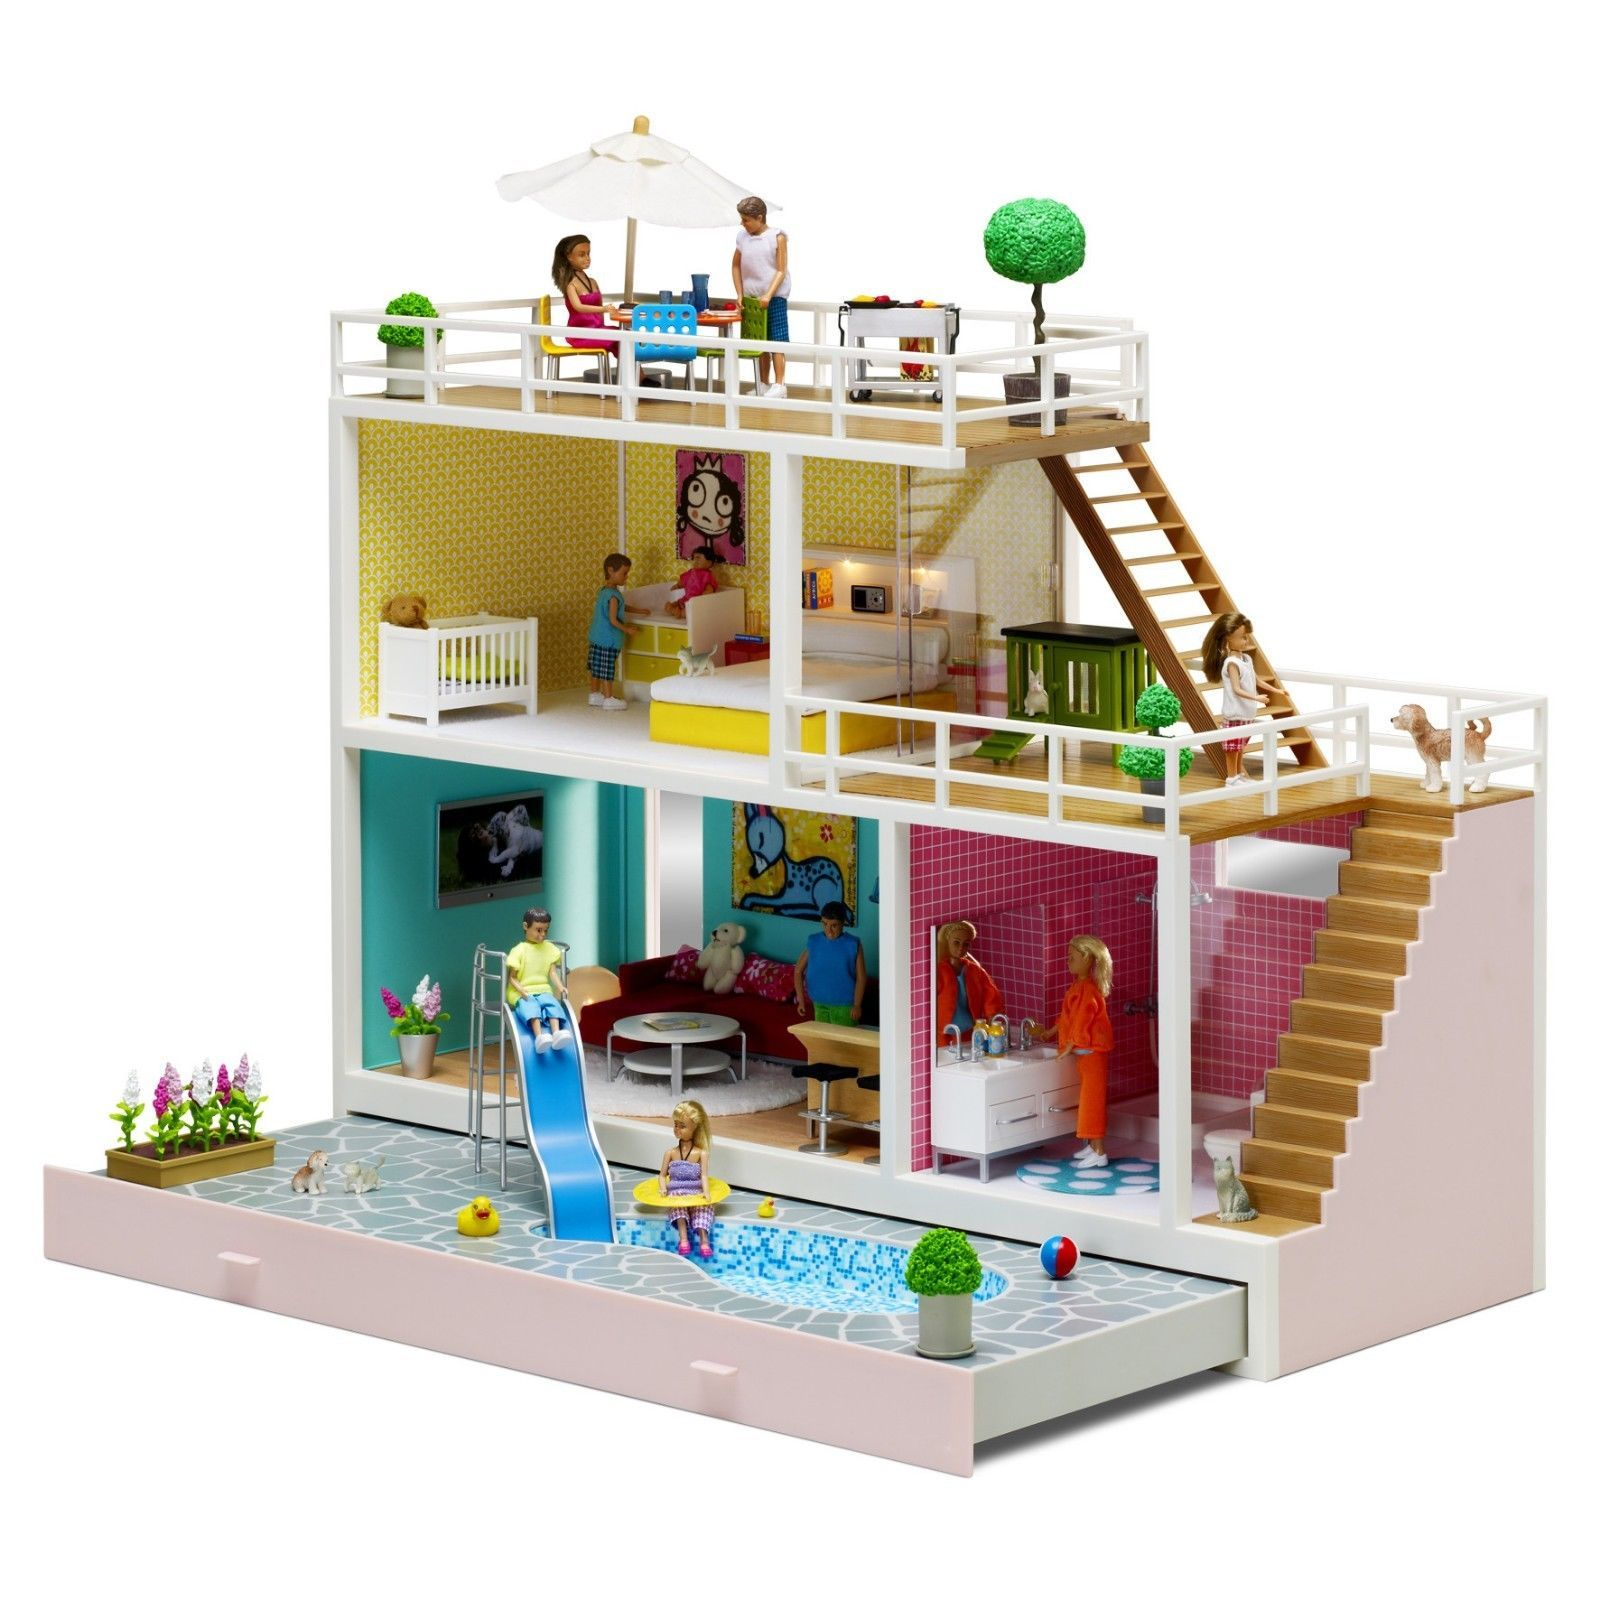 Lundby Doll House Stockholm Doll S House 2013 Including Accessories Lundby Doll House House